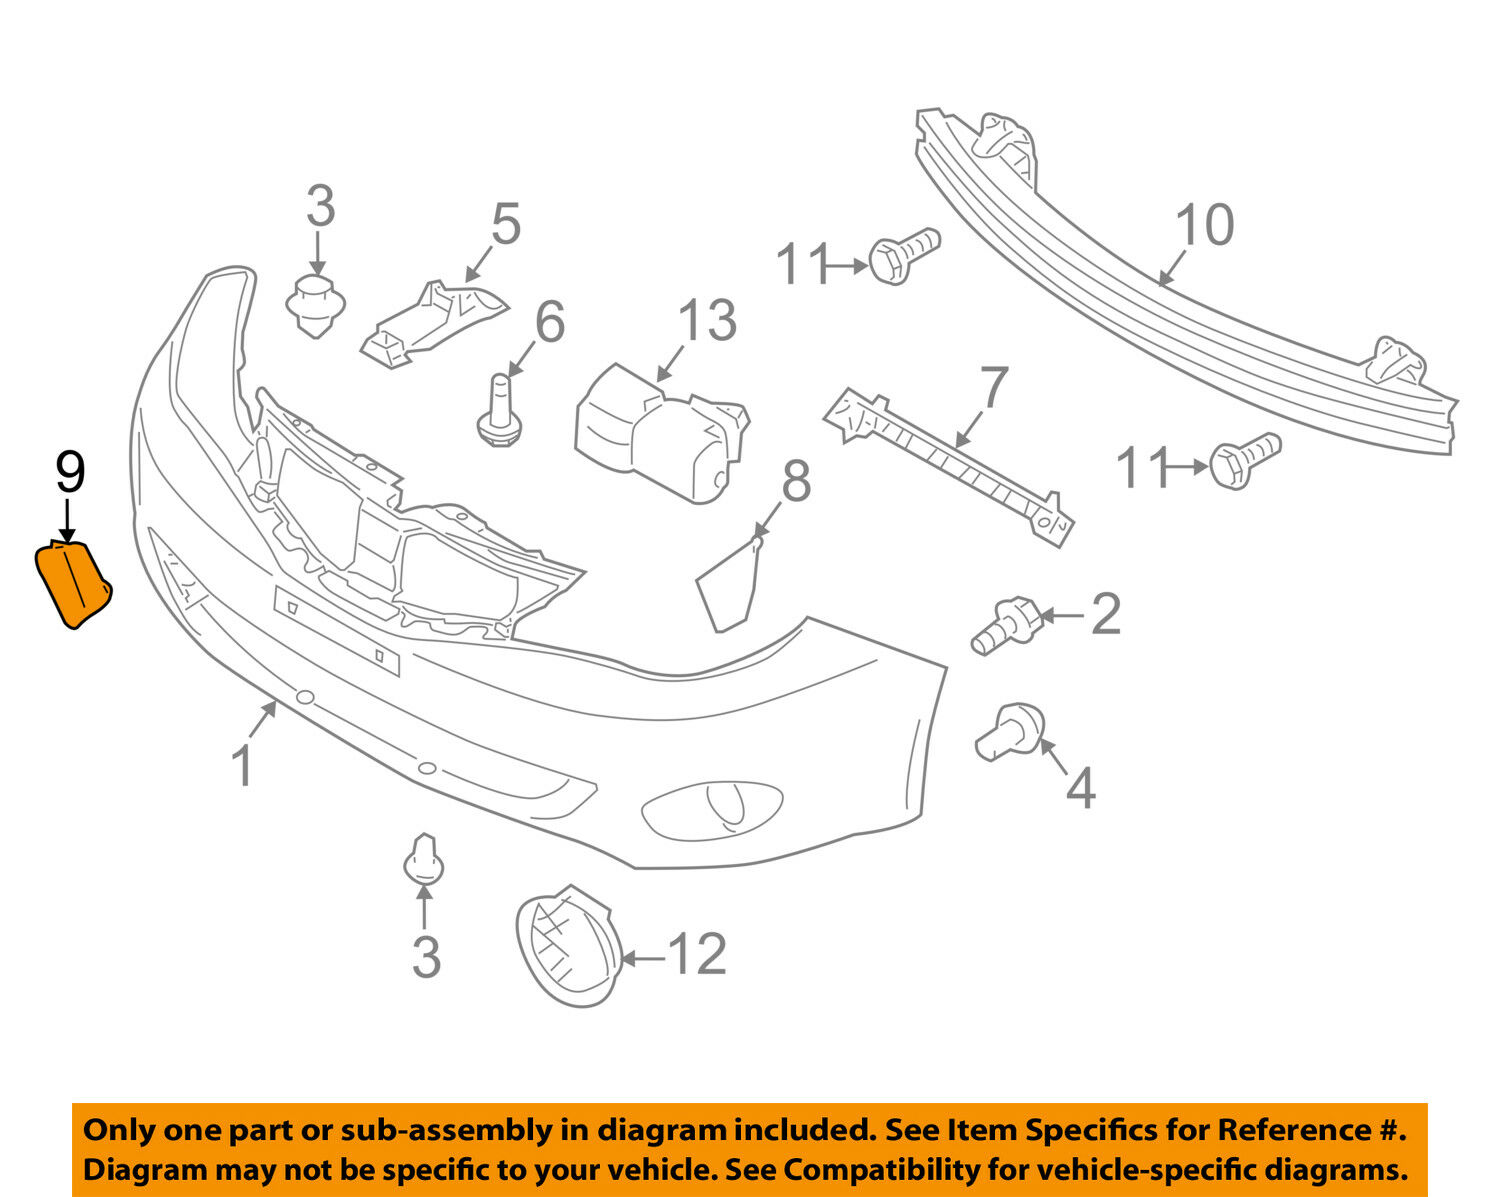 hight resolution of subaru oem 08 11 impreza front bumper tow eye cap cover 57731fg000 for sale